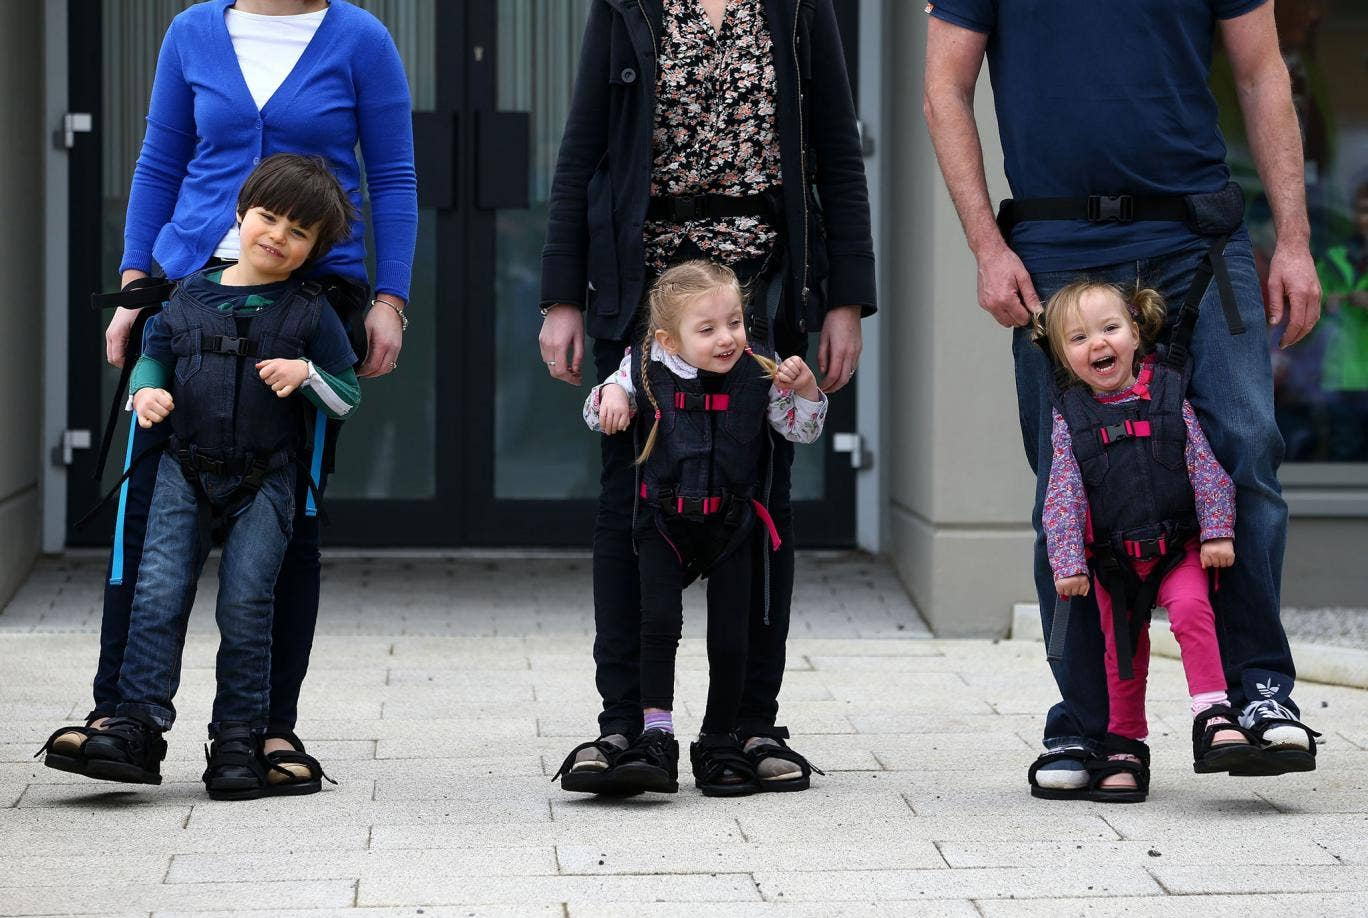 Daniel Smyth, 5, Bethany Watson, 3, and Charlotte Taylor, 3, using a Firefly Upsee, a new standing and walking harness for children with motor impairment, which attaches to a parent, allowing them and their child to take steps together